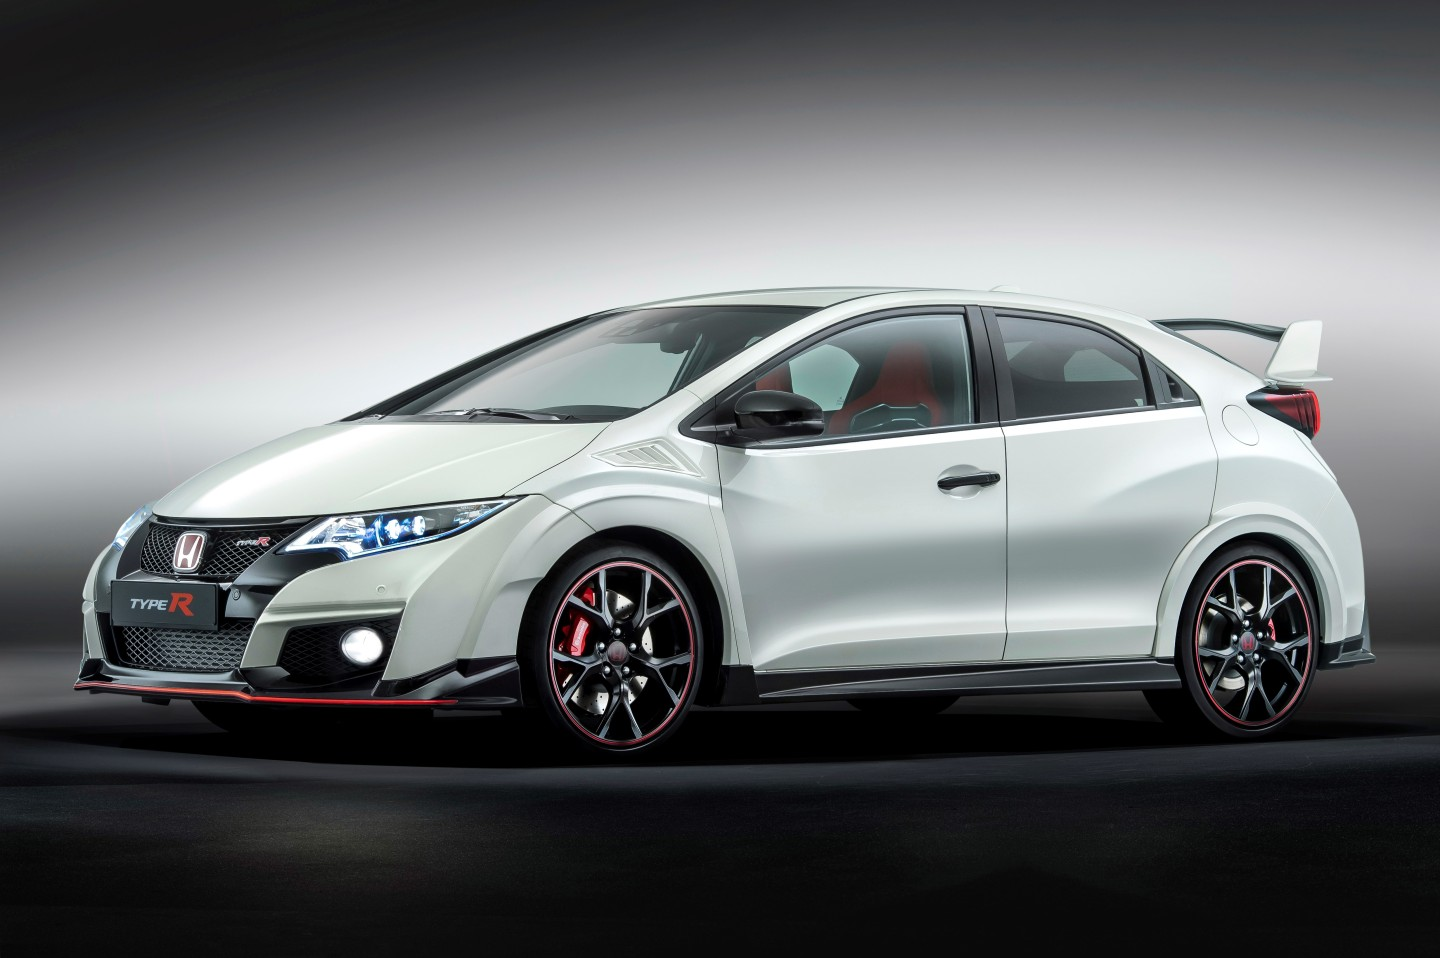 2016 honda civic type r turbo price wroc awski informator internetowy wroc aw wroclaw. Black Bedroom Furniture Sets. Home Design Ideas